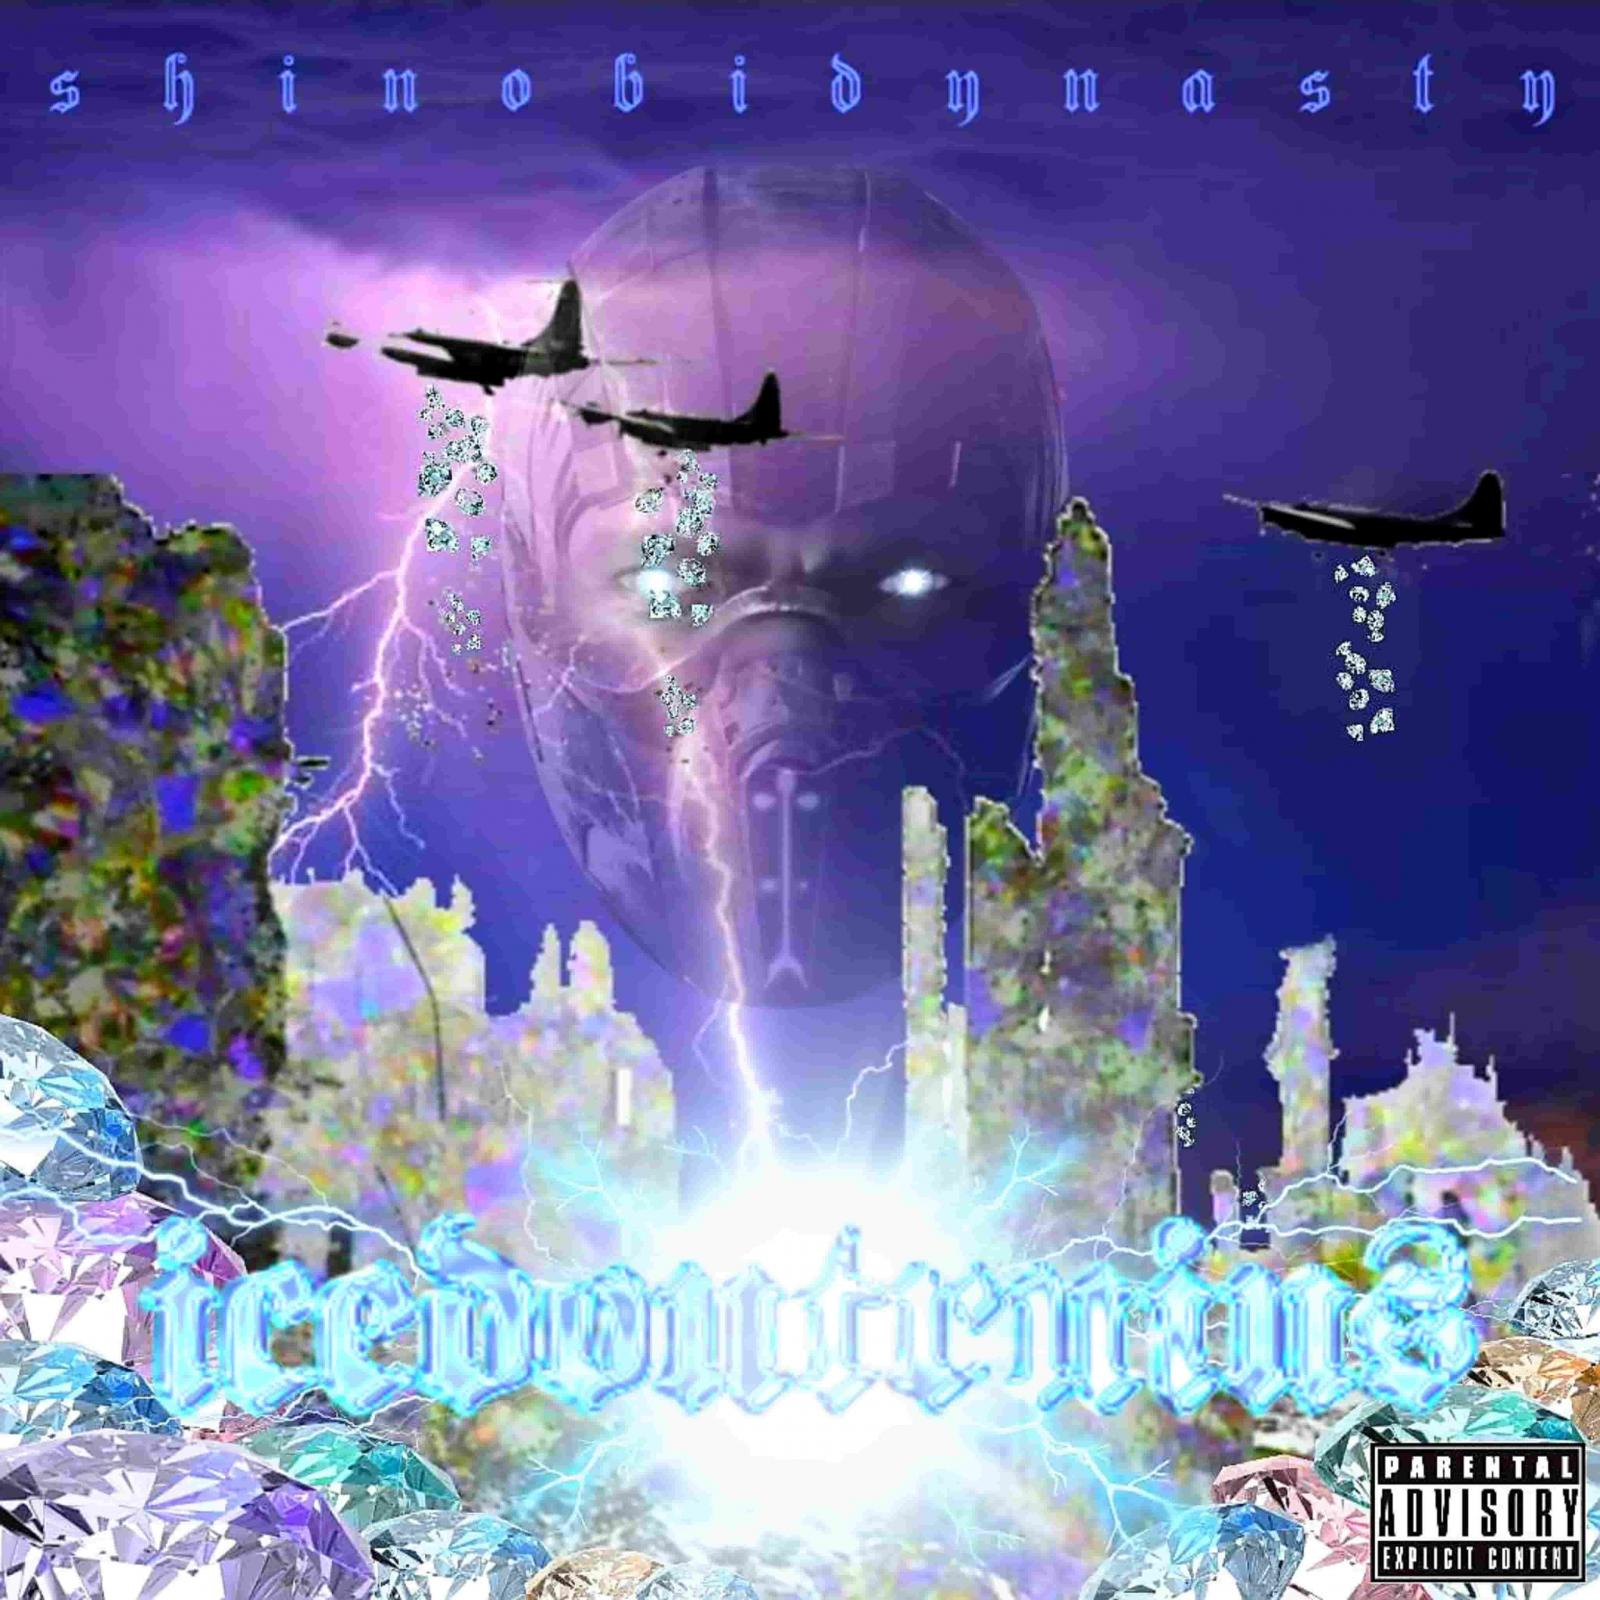 Upcoming: Skrrt Cobain, Yung Zerb, Essem - Iced Out Ruins